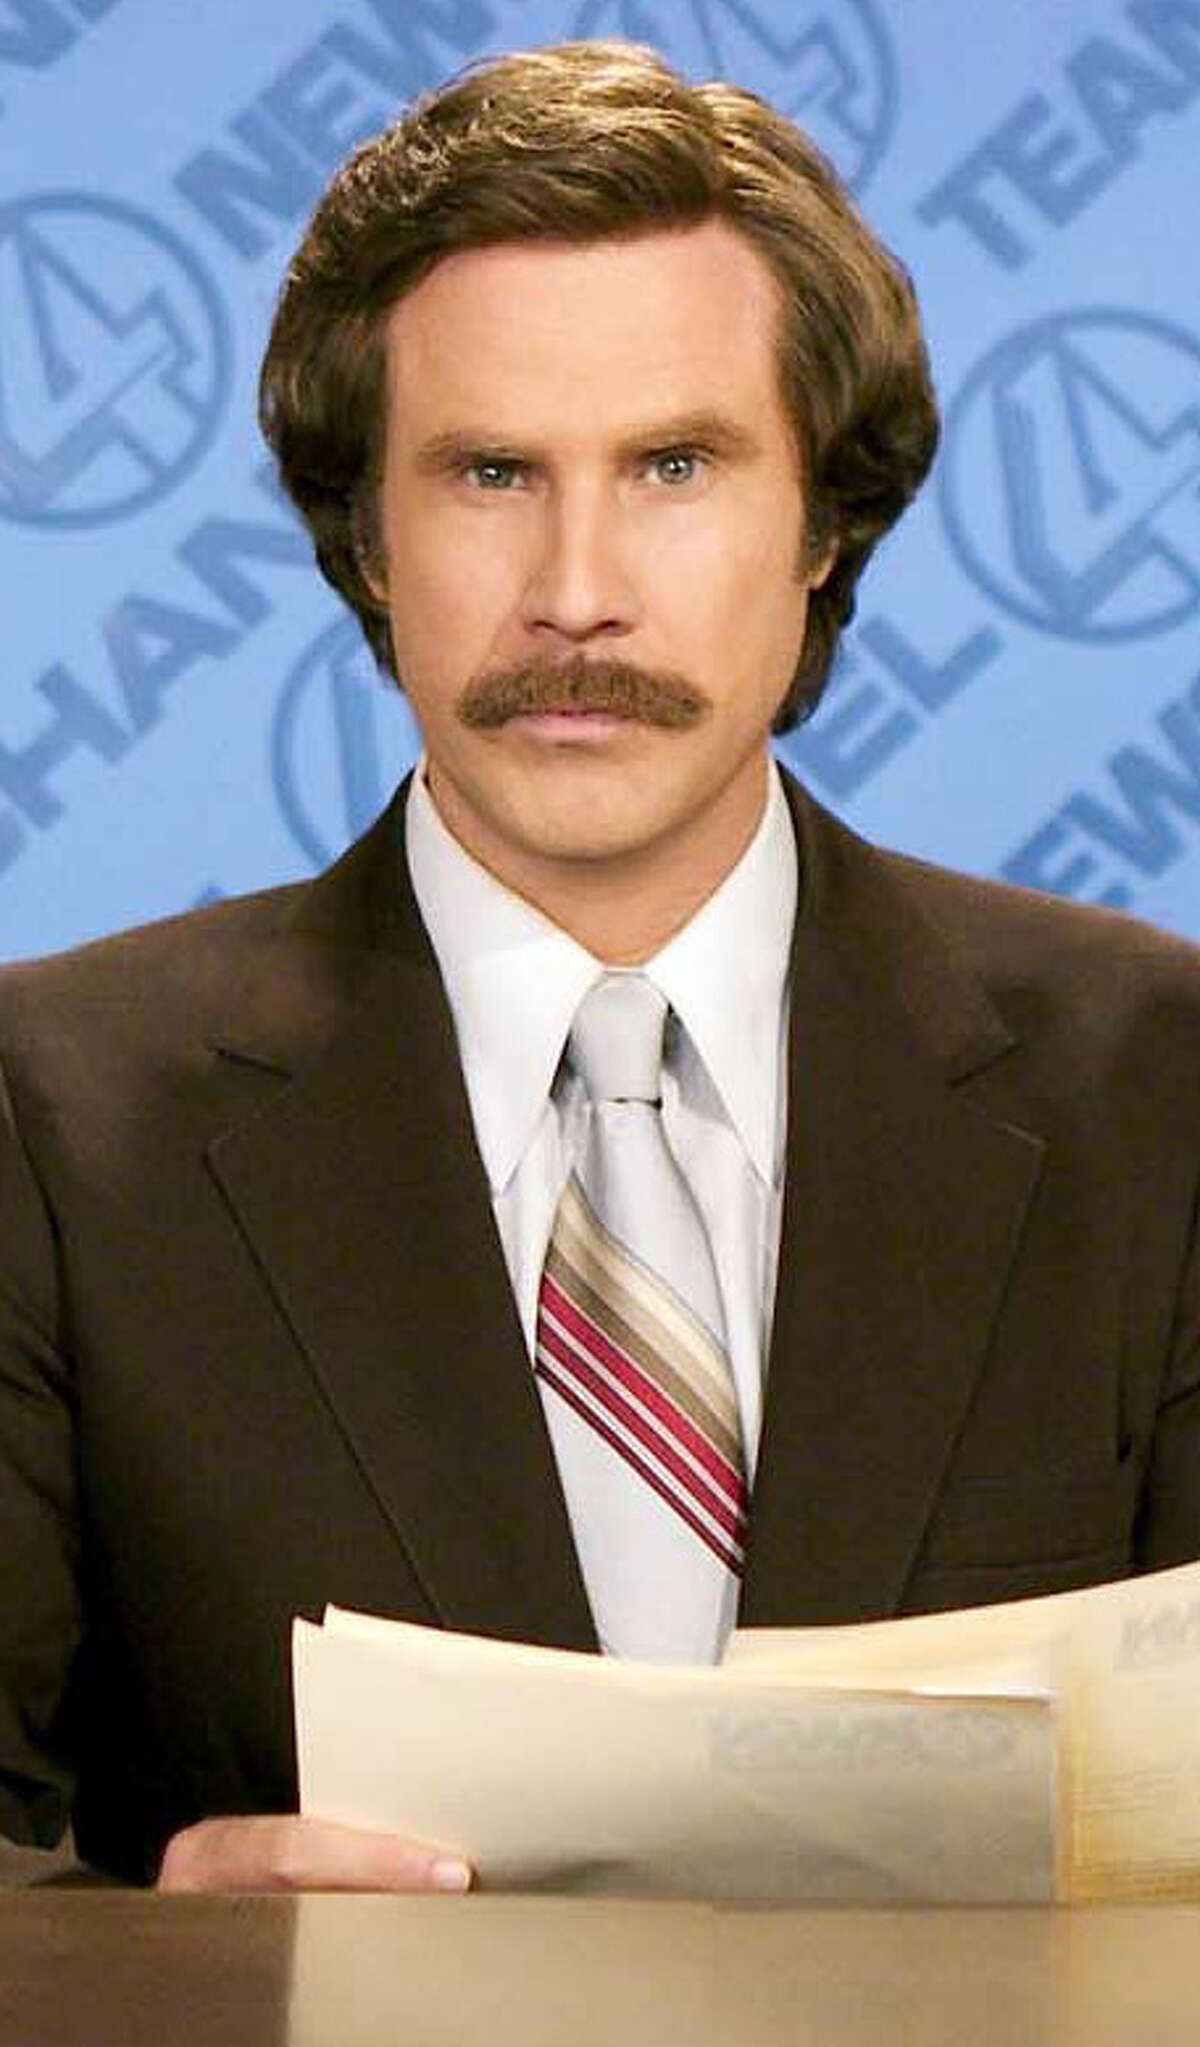 Who could possibly match the 'stache' and style of Ron Burgundy.